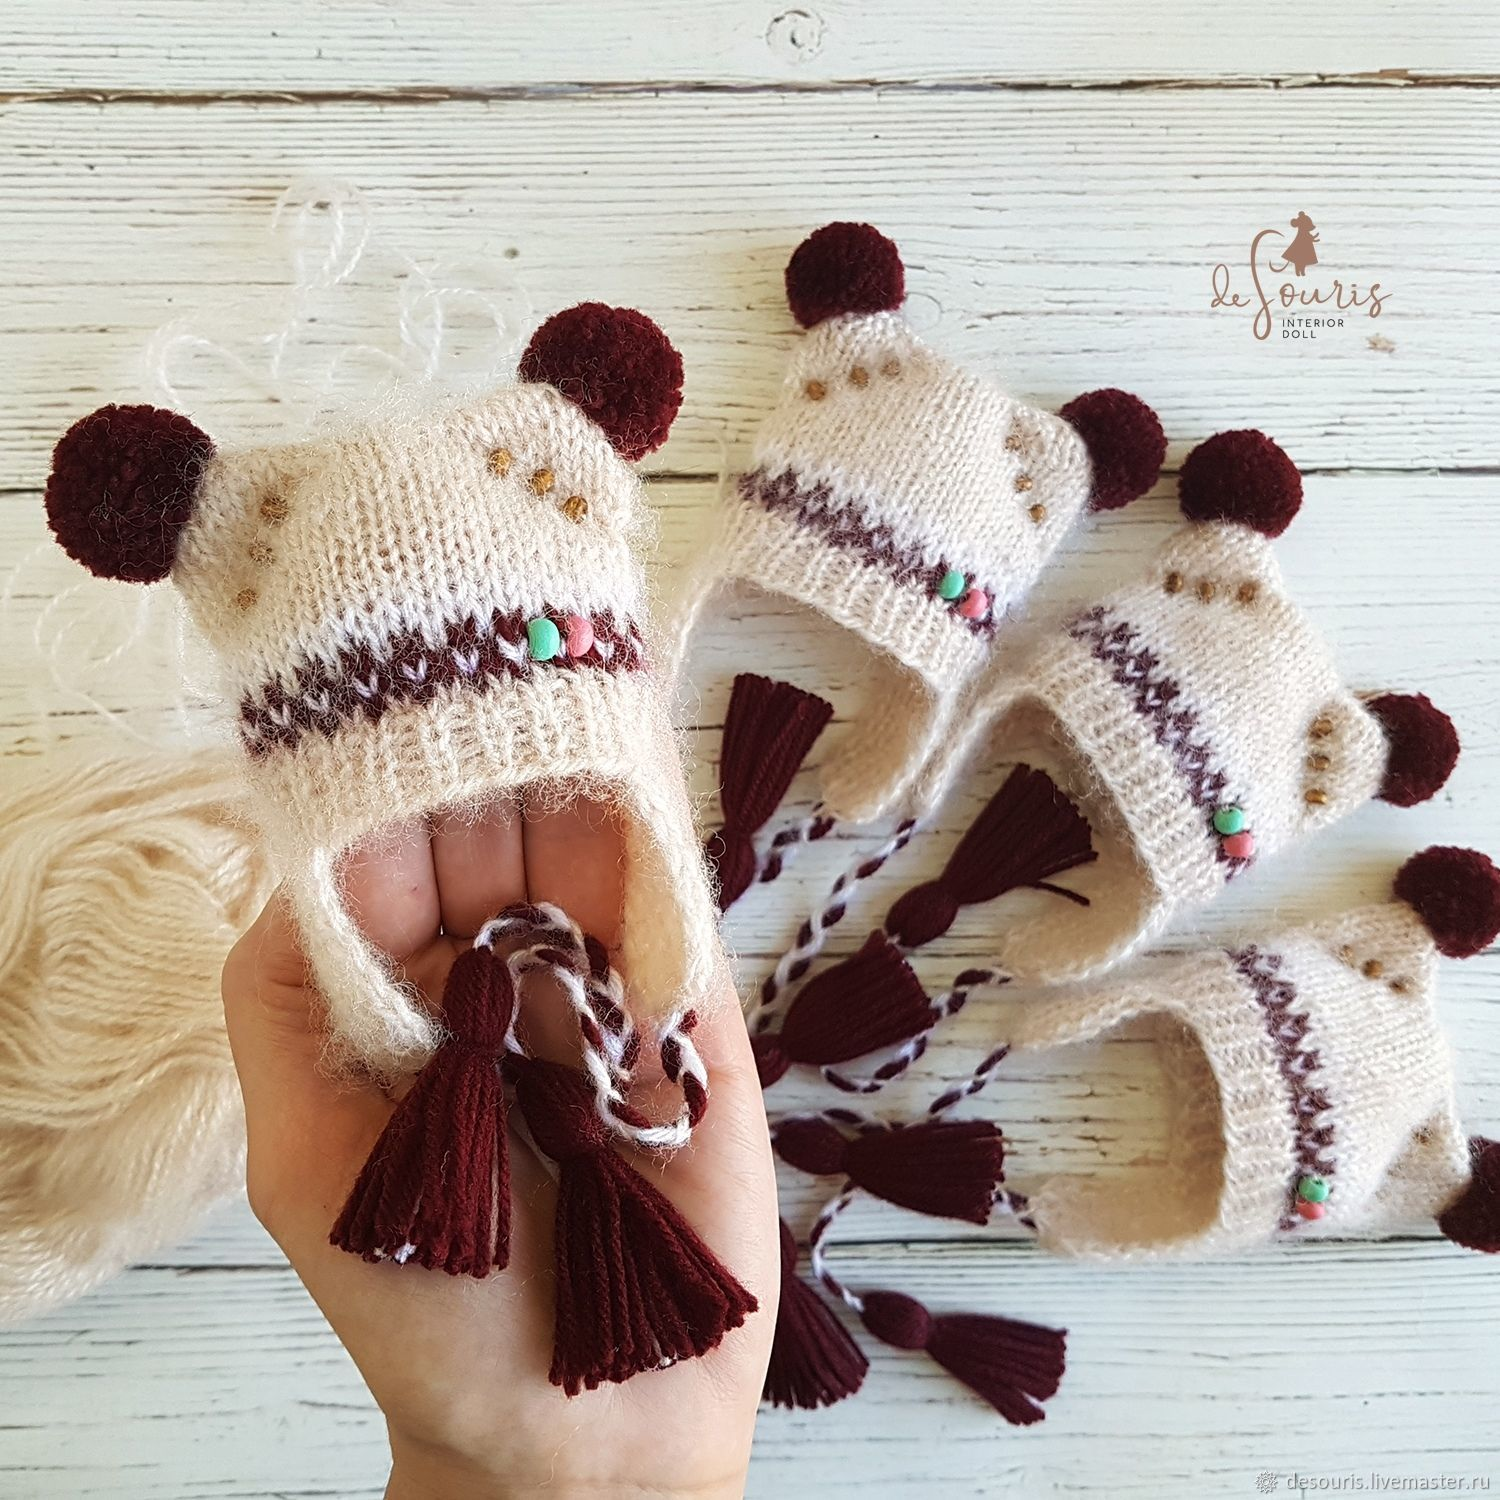 hat for doll,knitted hat, clothing for dolls, headgear for dolls, doll clothing.